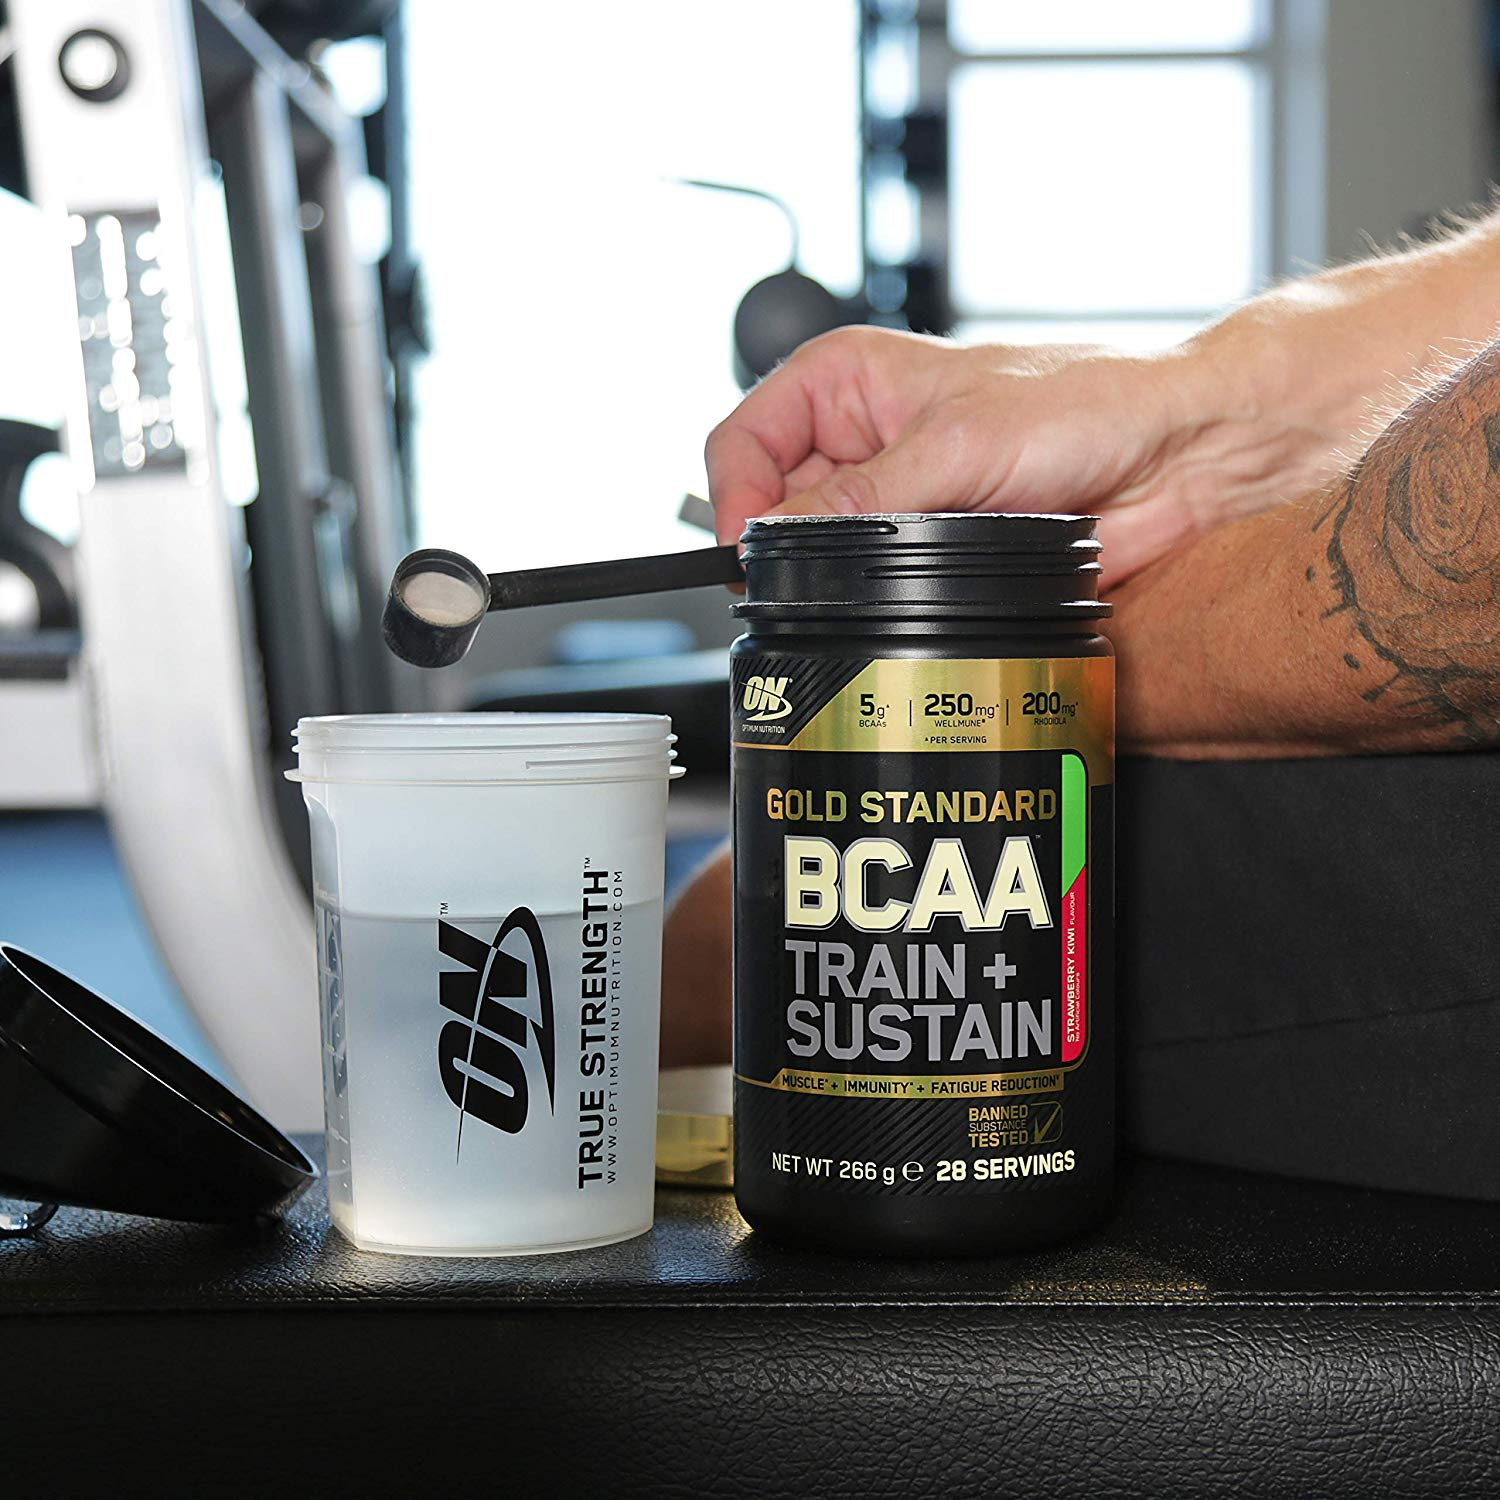 Athlète utilisant Gold Standard BCAA Train & Sustain d'Optimum Nutrition